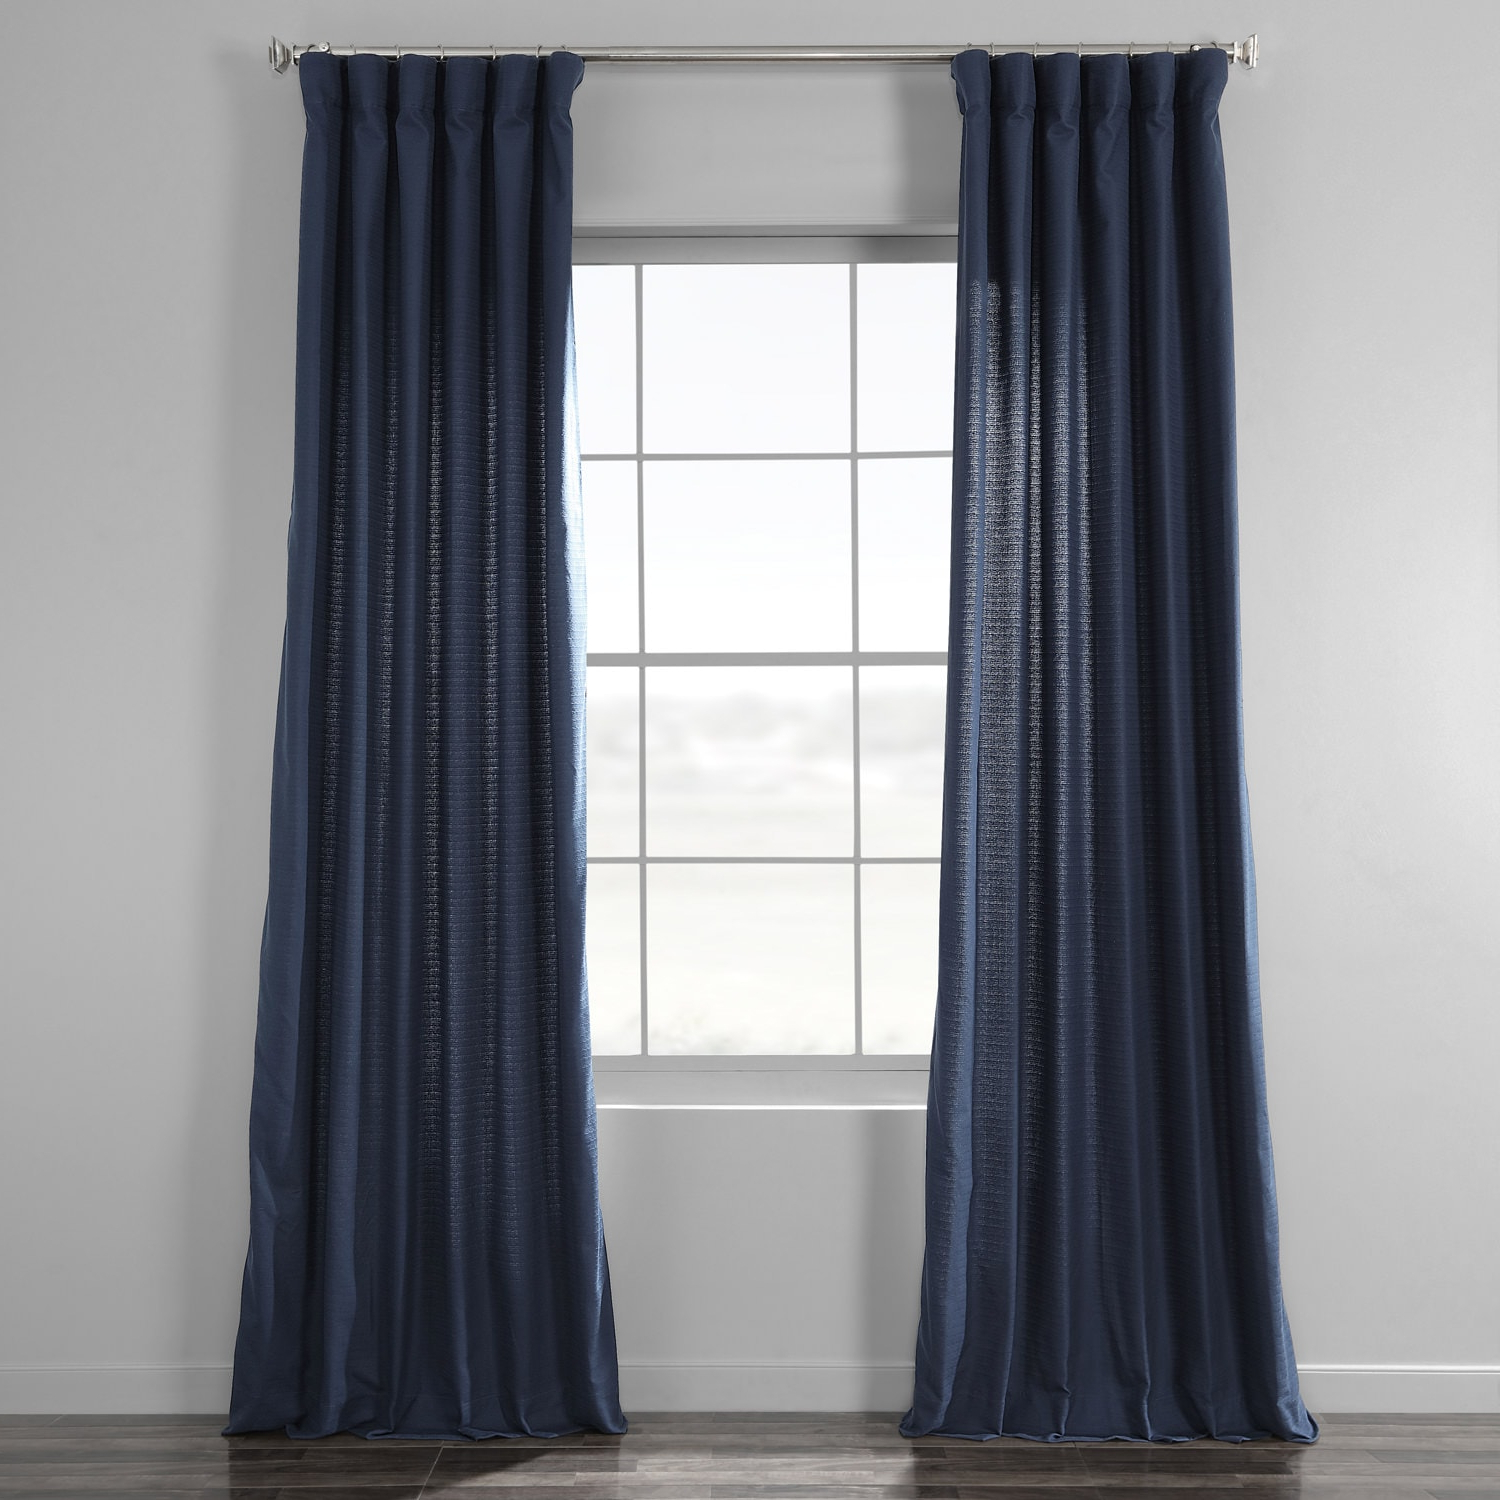 Bark Weave Solid Cotton Curtains Inside Latest Elegant Navy Bark Weave Solid Cotton Curtain (View 3 of 20)